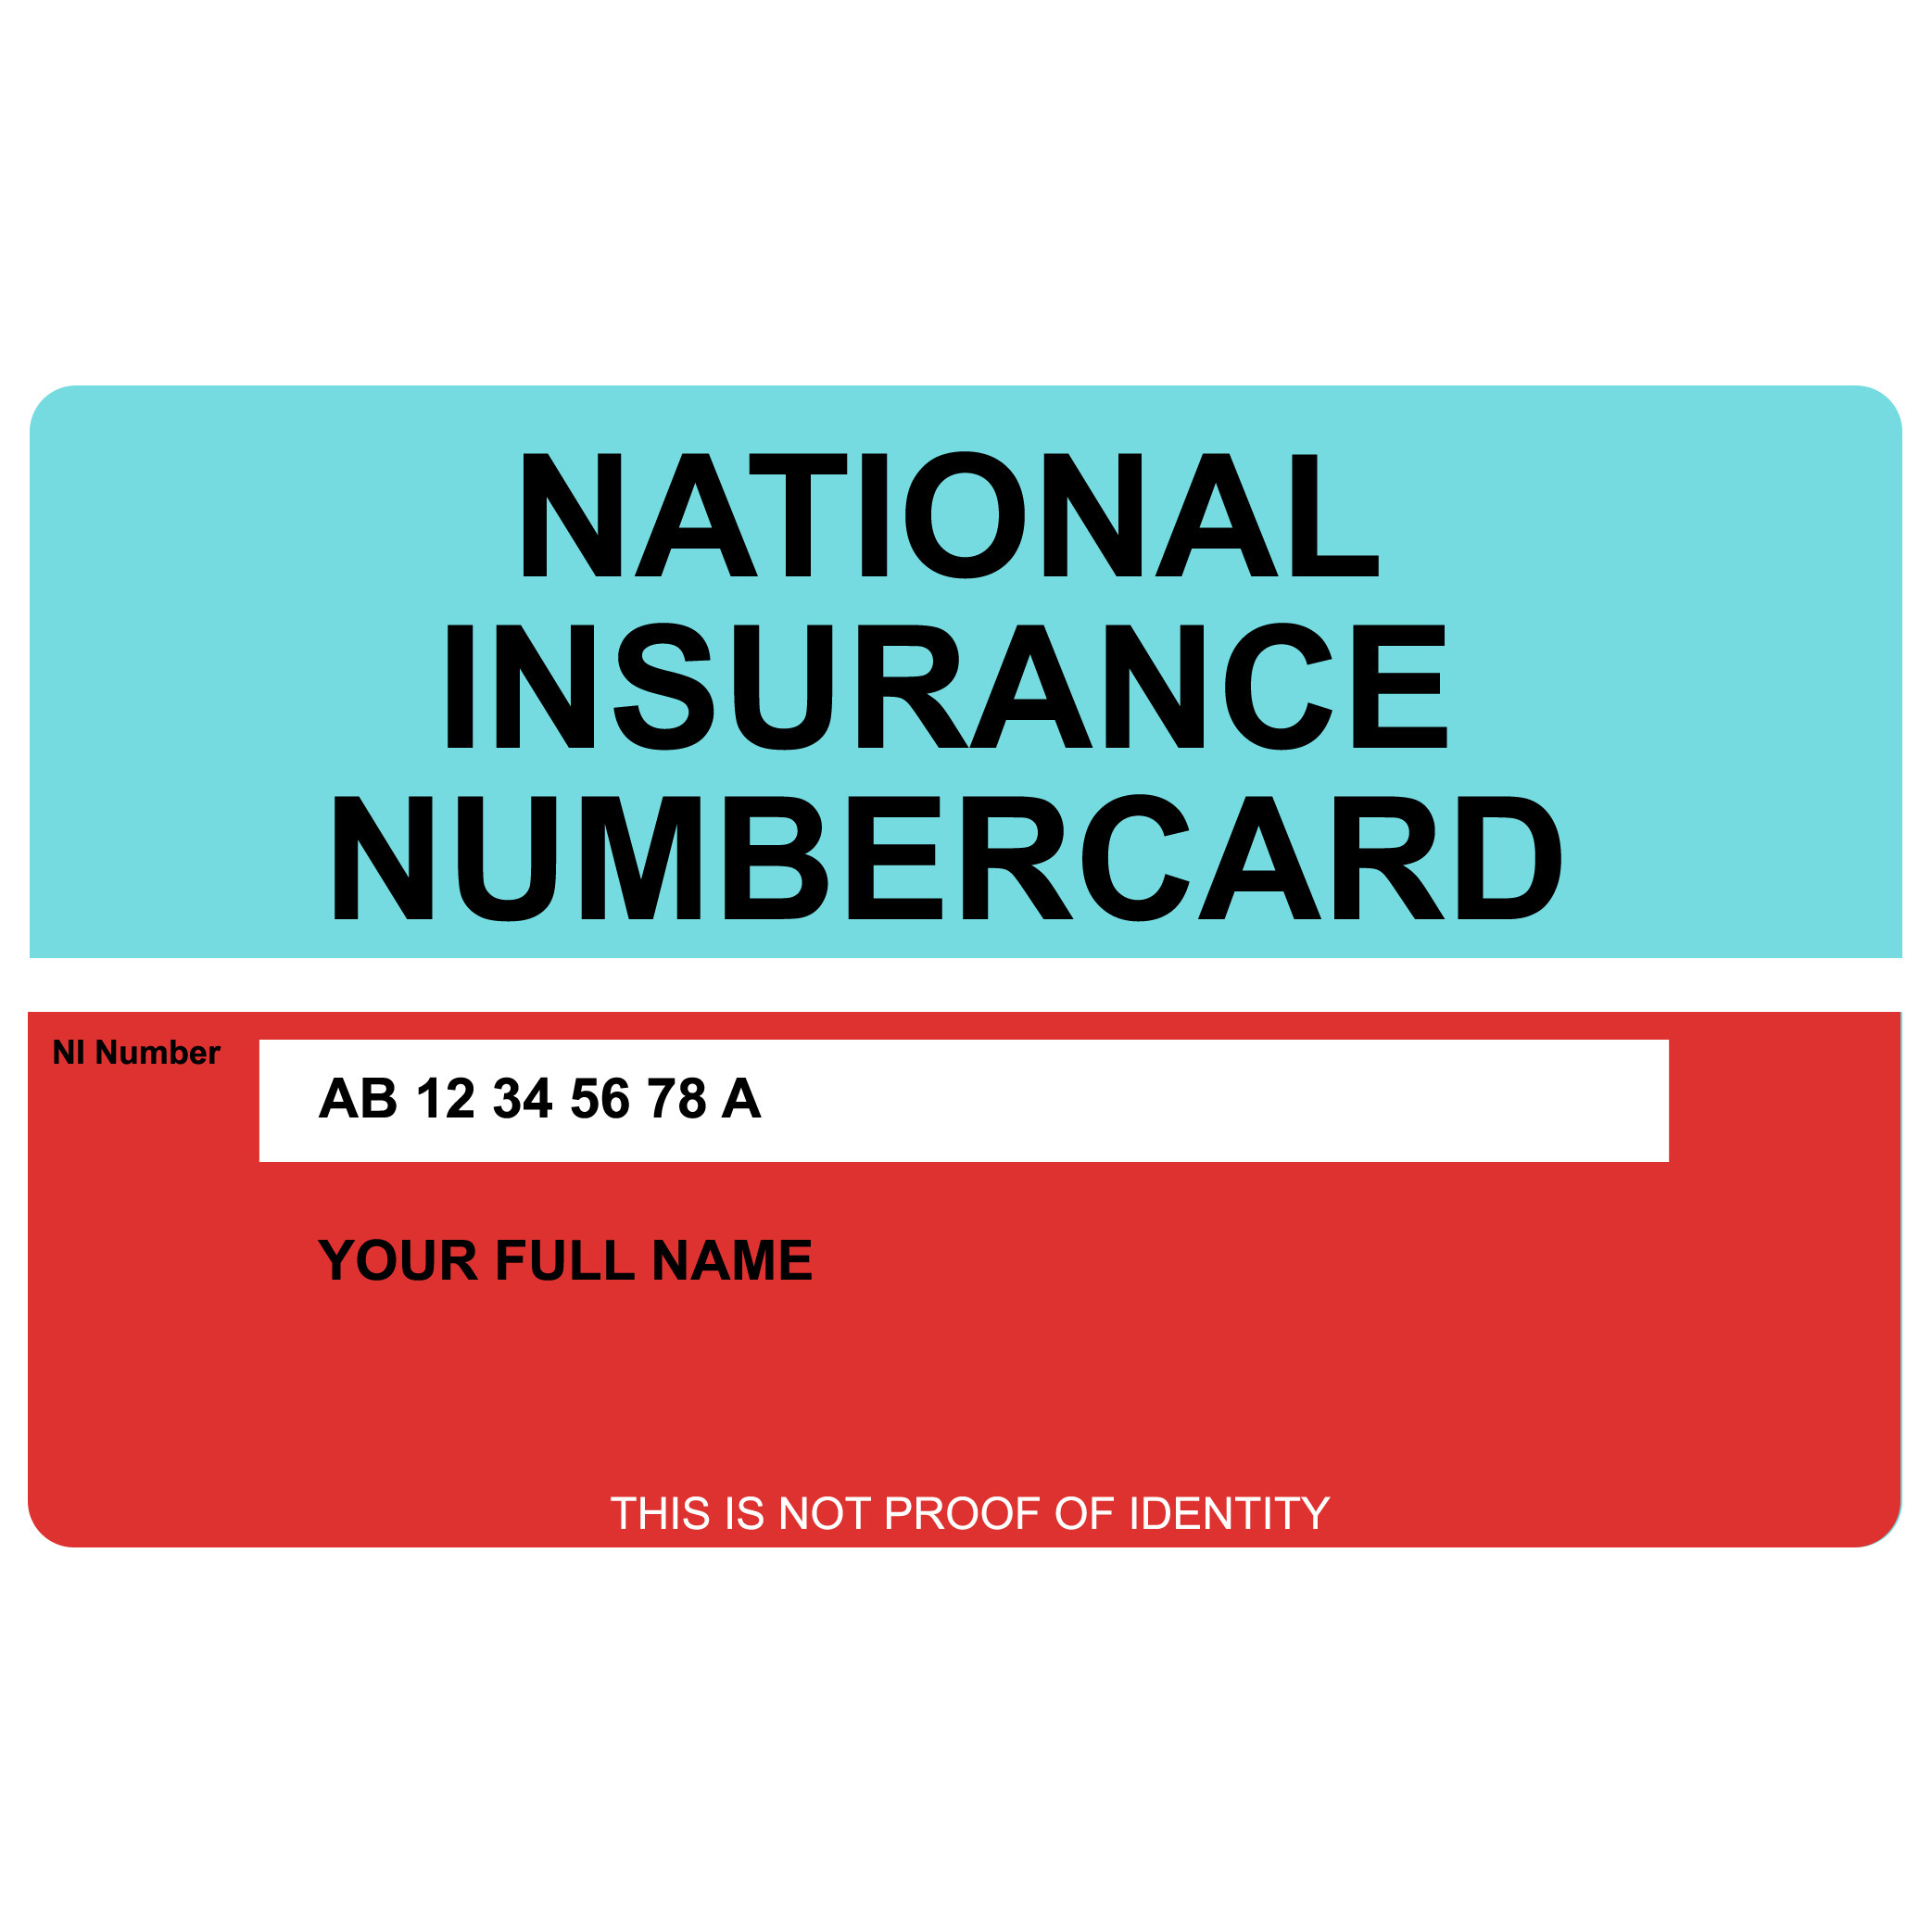 national insurance card template  National Insurance Number Card - Printed on hard plastic - Action Retail